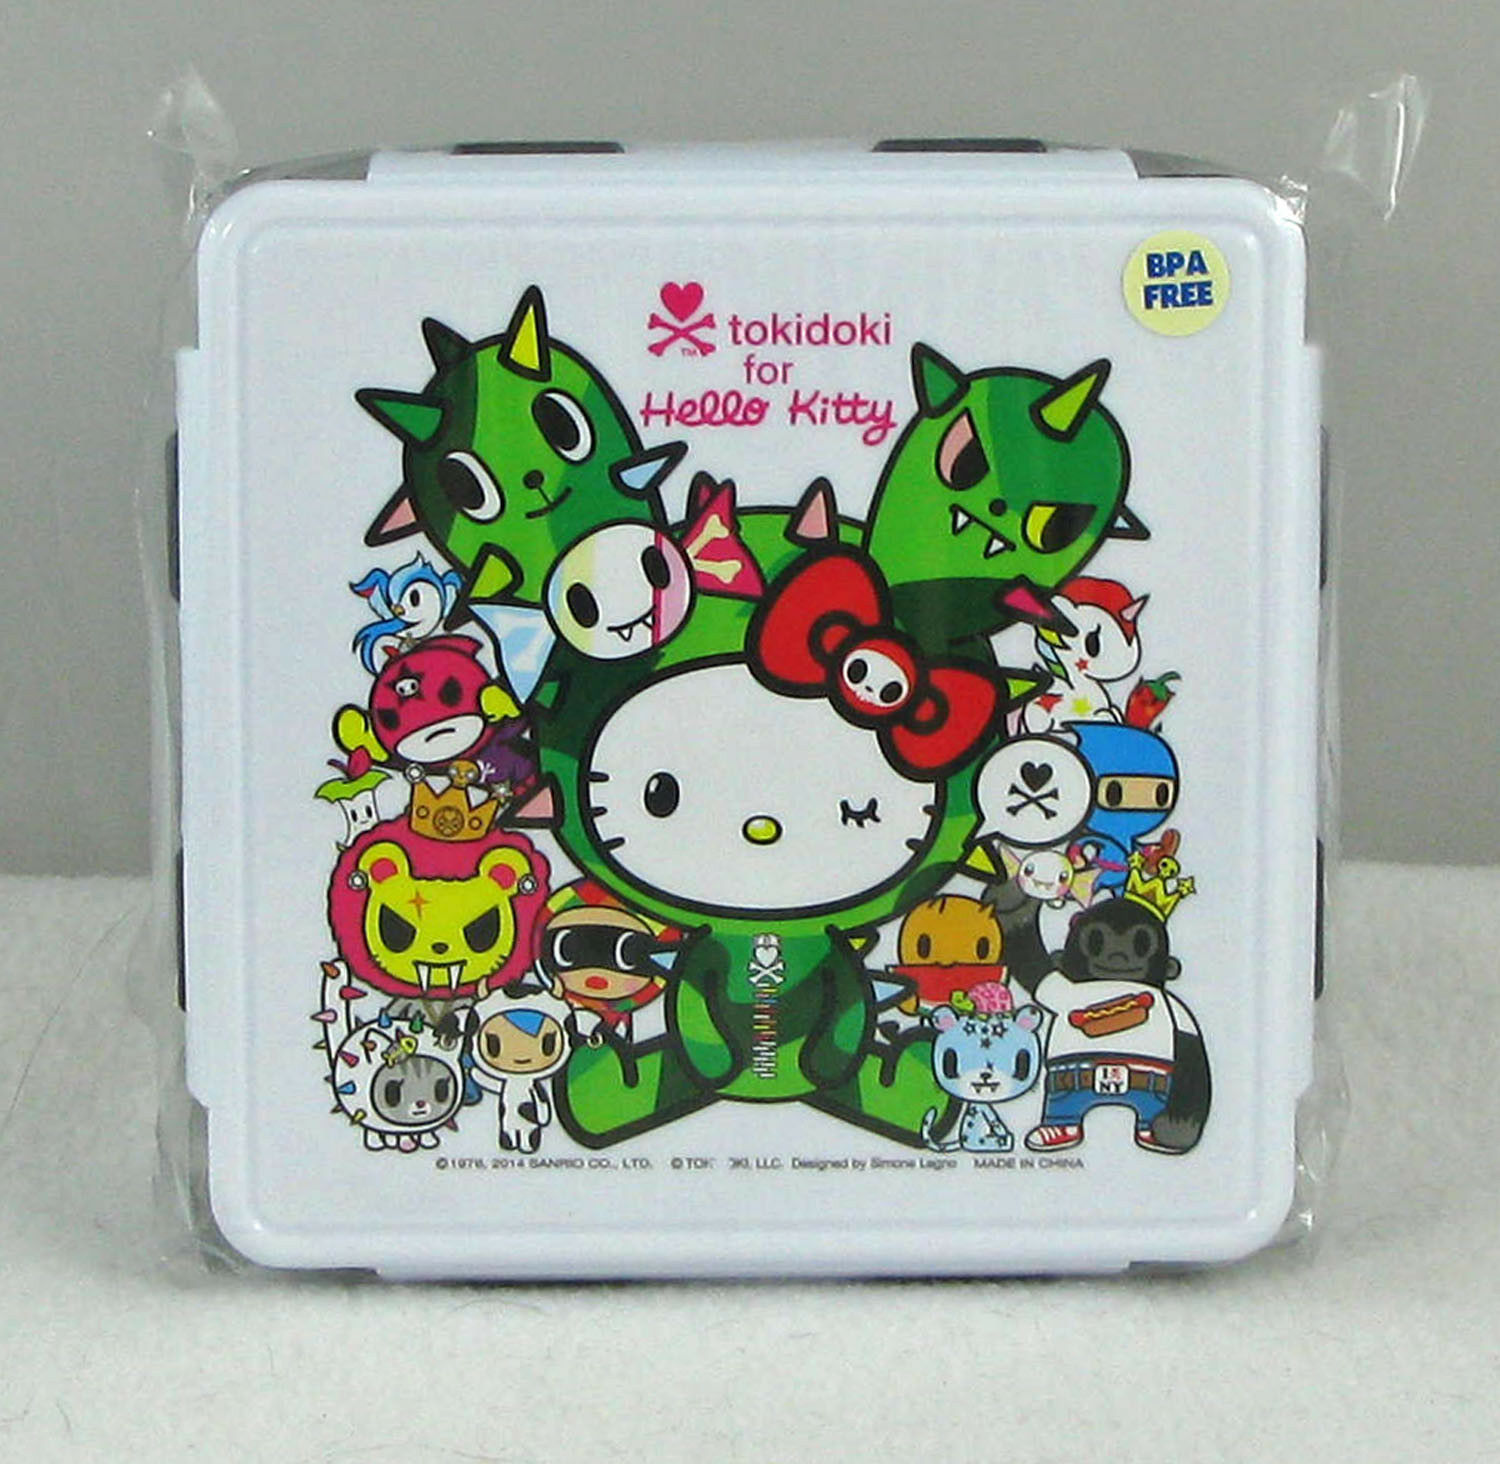 tokidoki hello kitty sandy bento box kit reunion lunch container w fork spoon. Black Bedroom Furniture Sets. Home Design Ideas